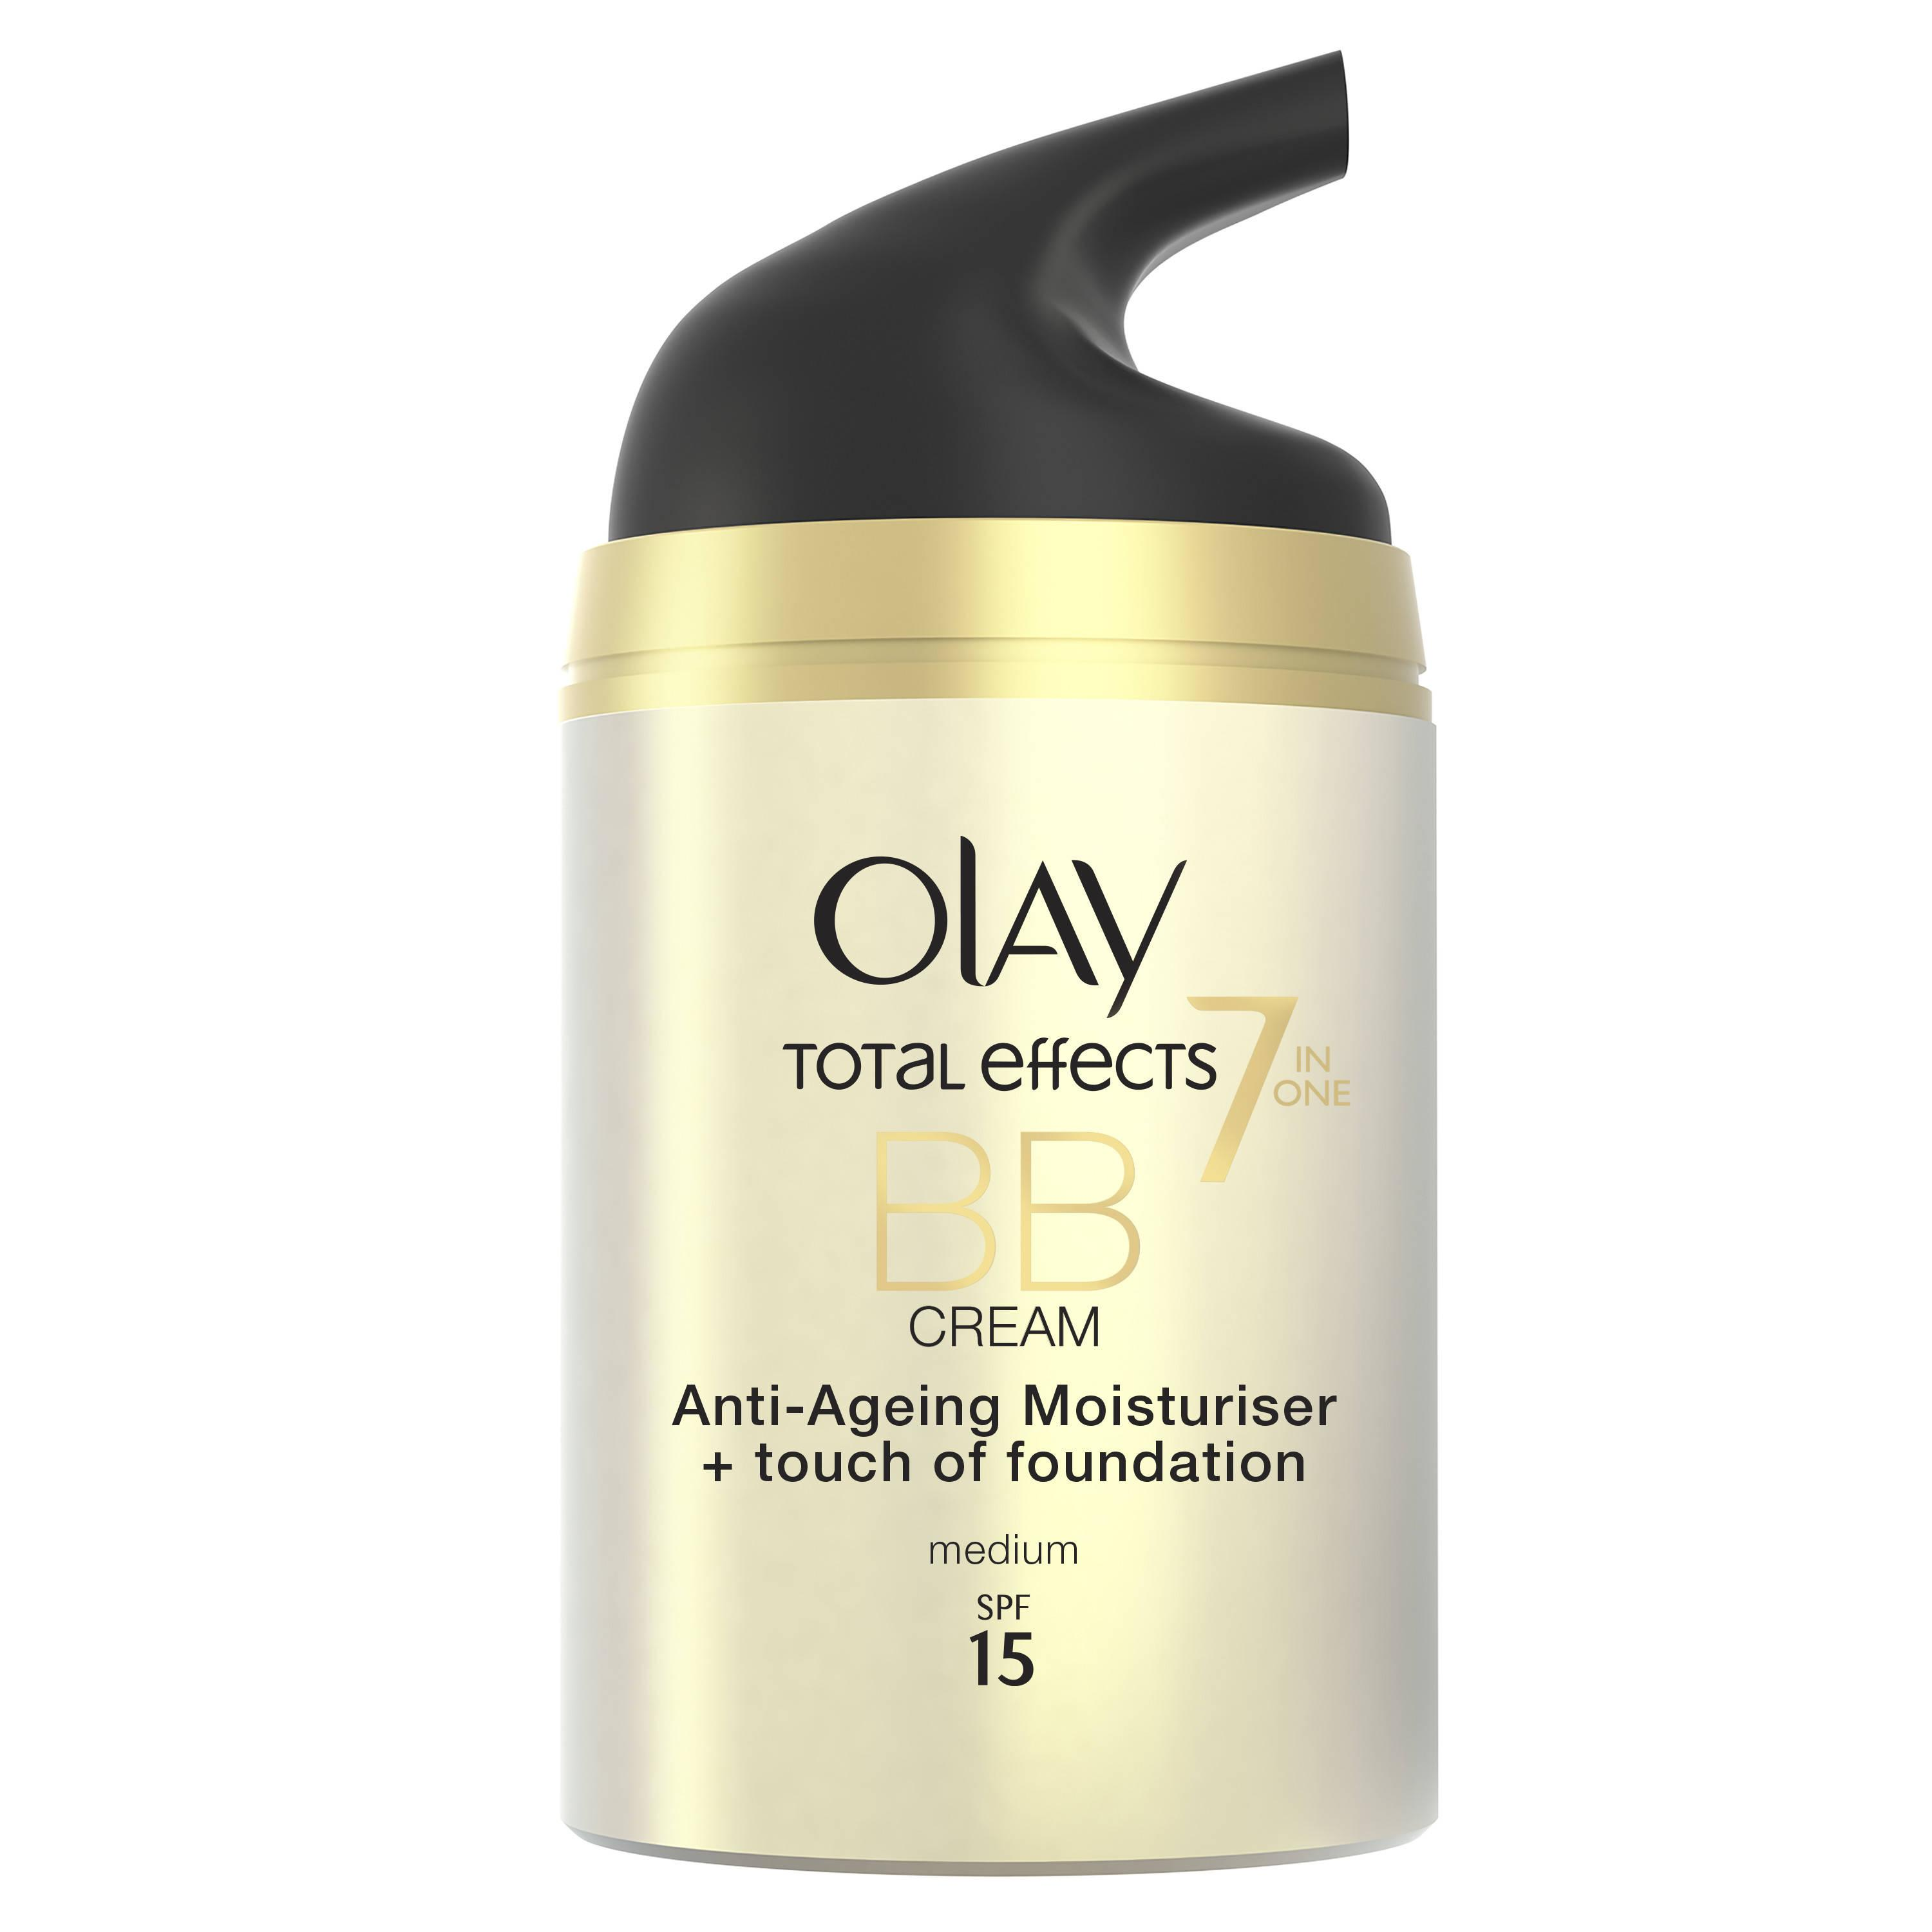 Olay Total Effects 7 In 1 Touch Of Foundation BB